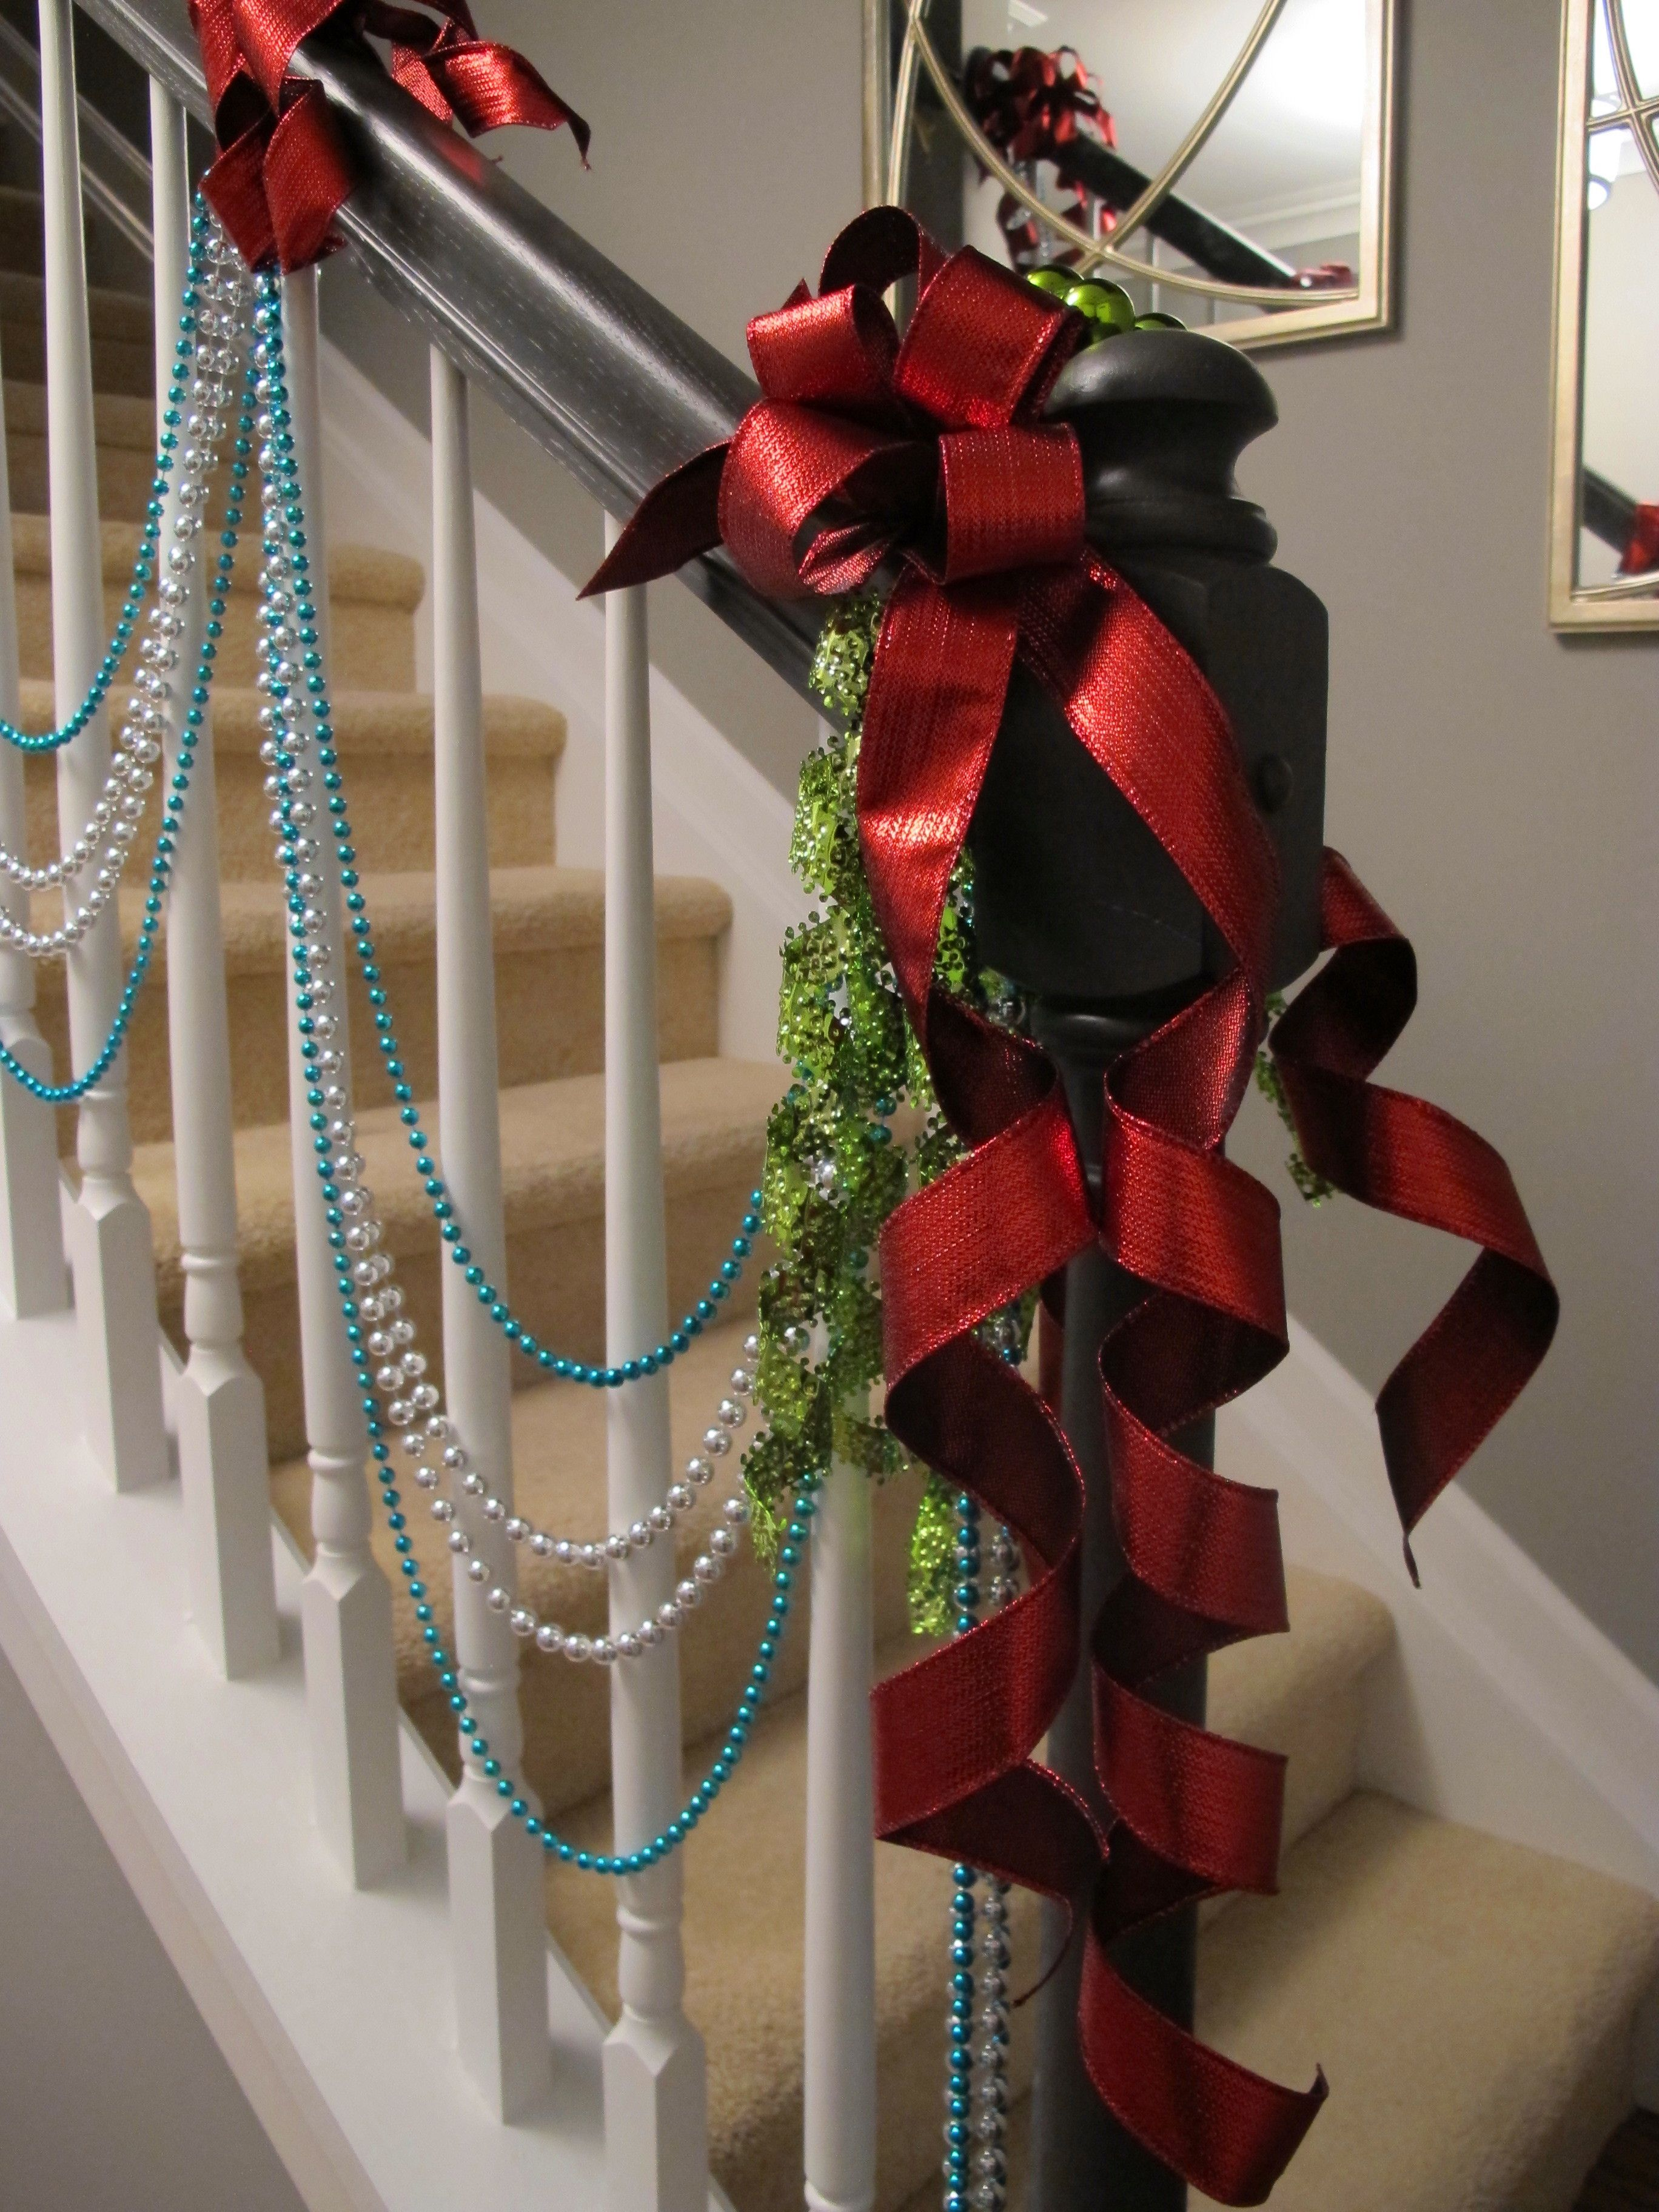 Decorating banisters for christmas with ribbon - Ribbon Clusters With Draped Beads On A Small Banister Add Christmas Cheer